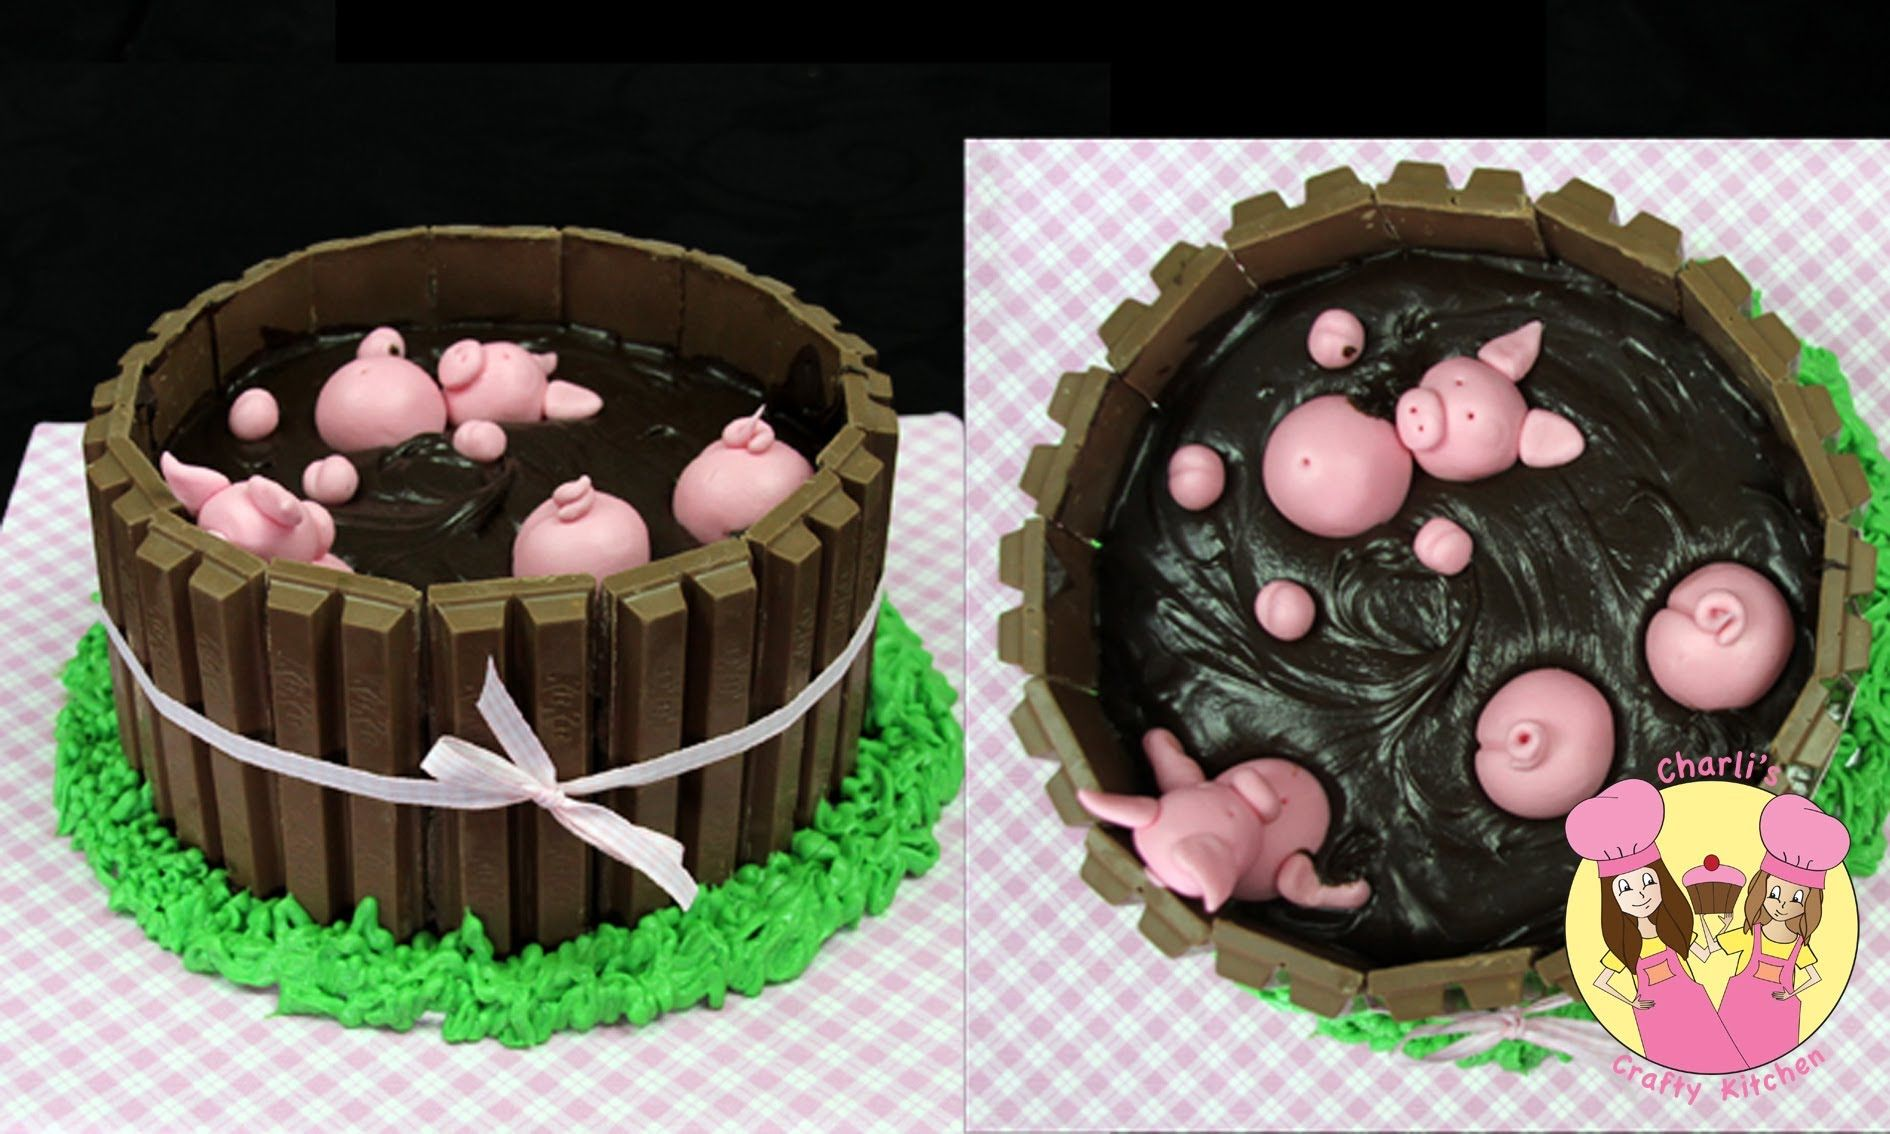 PIGS IN MUD CAKE A Mycupcakeaddiction collaboration how to Cakes